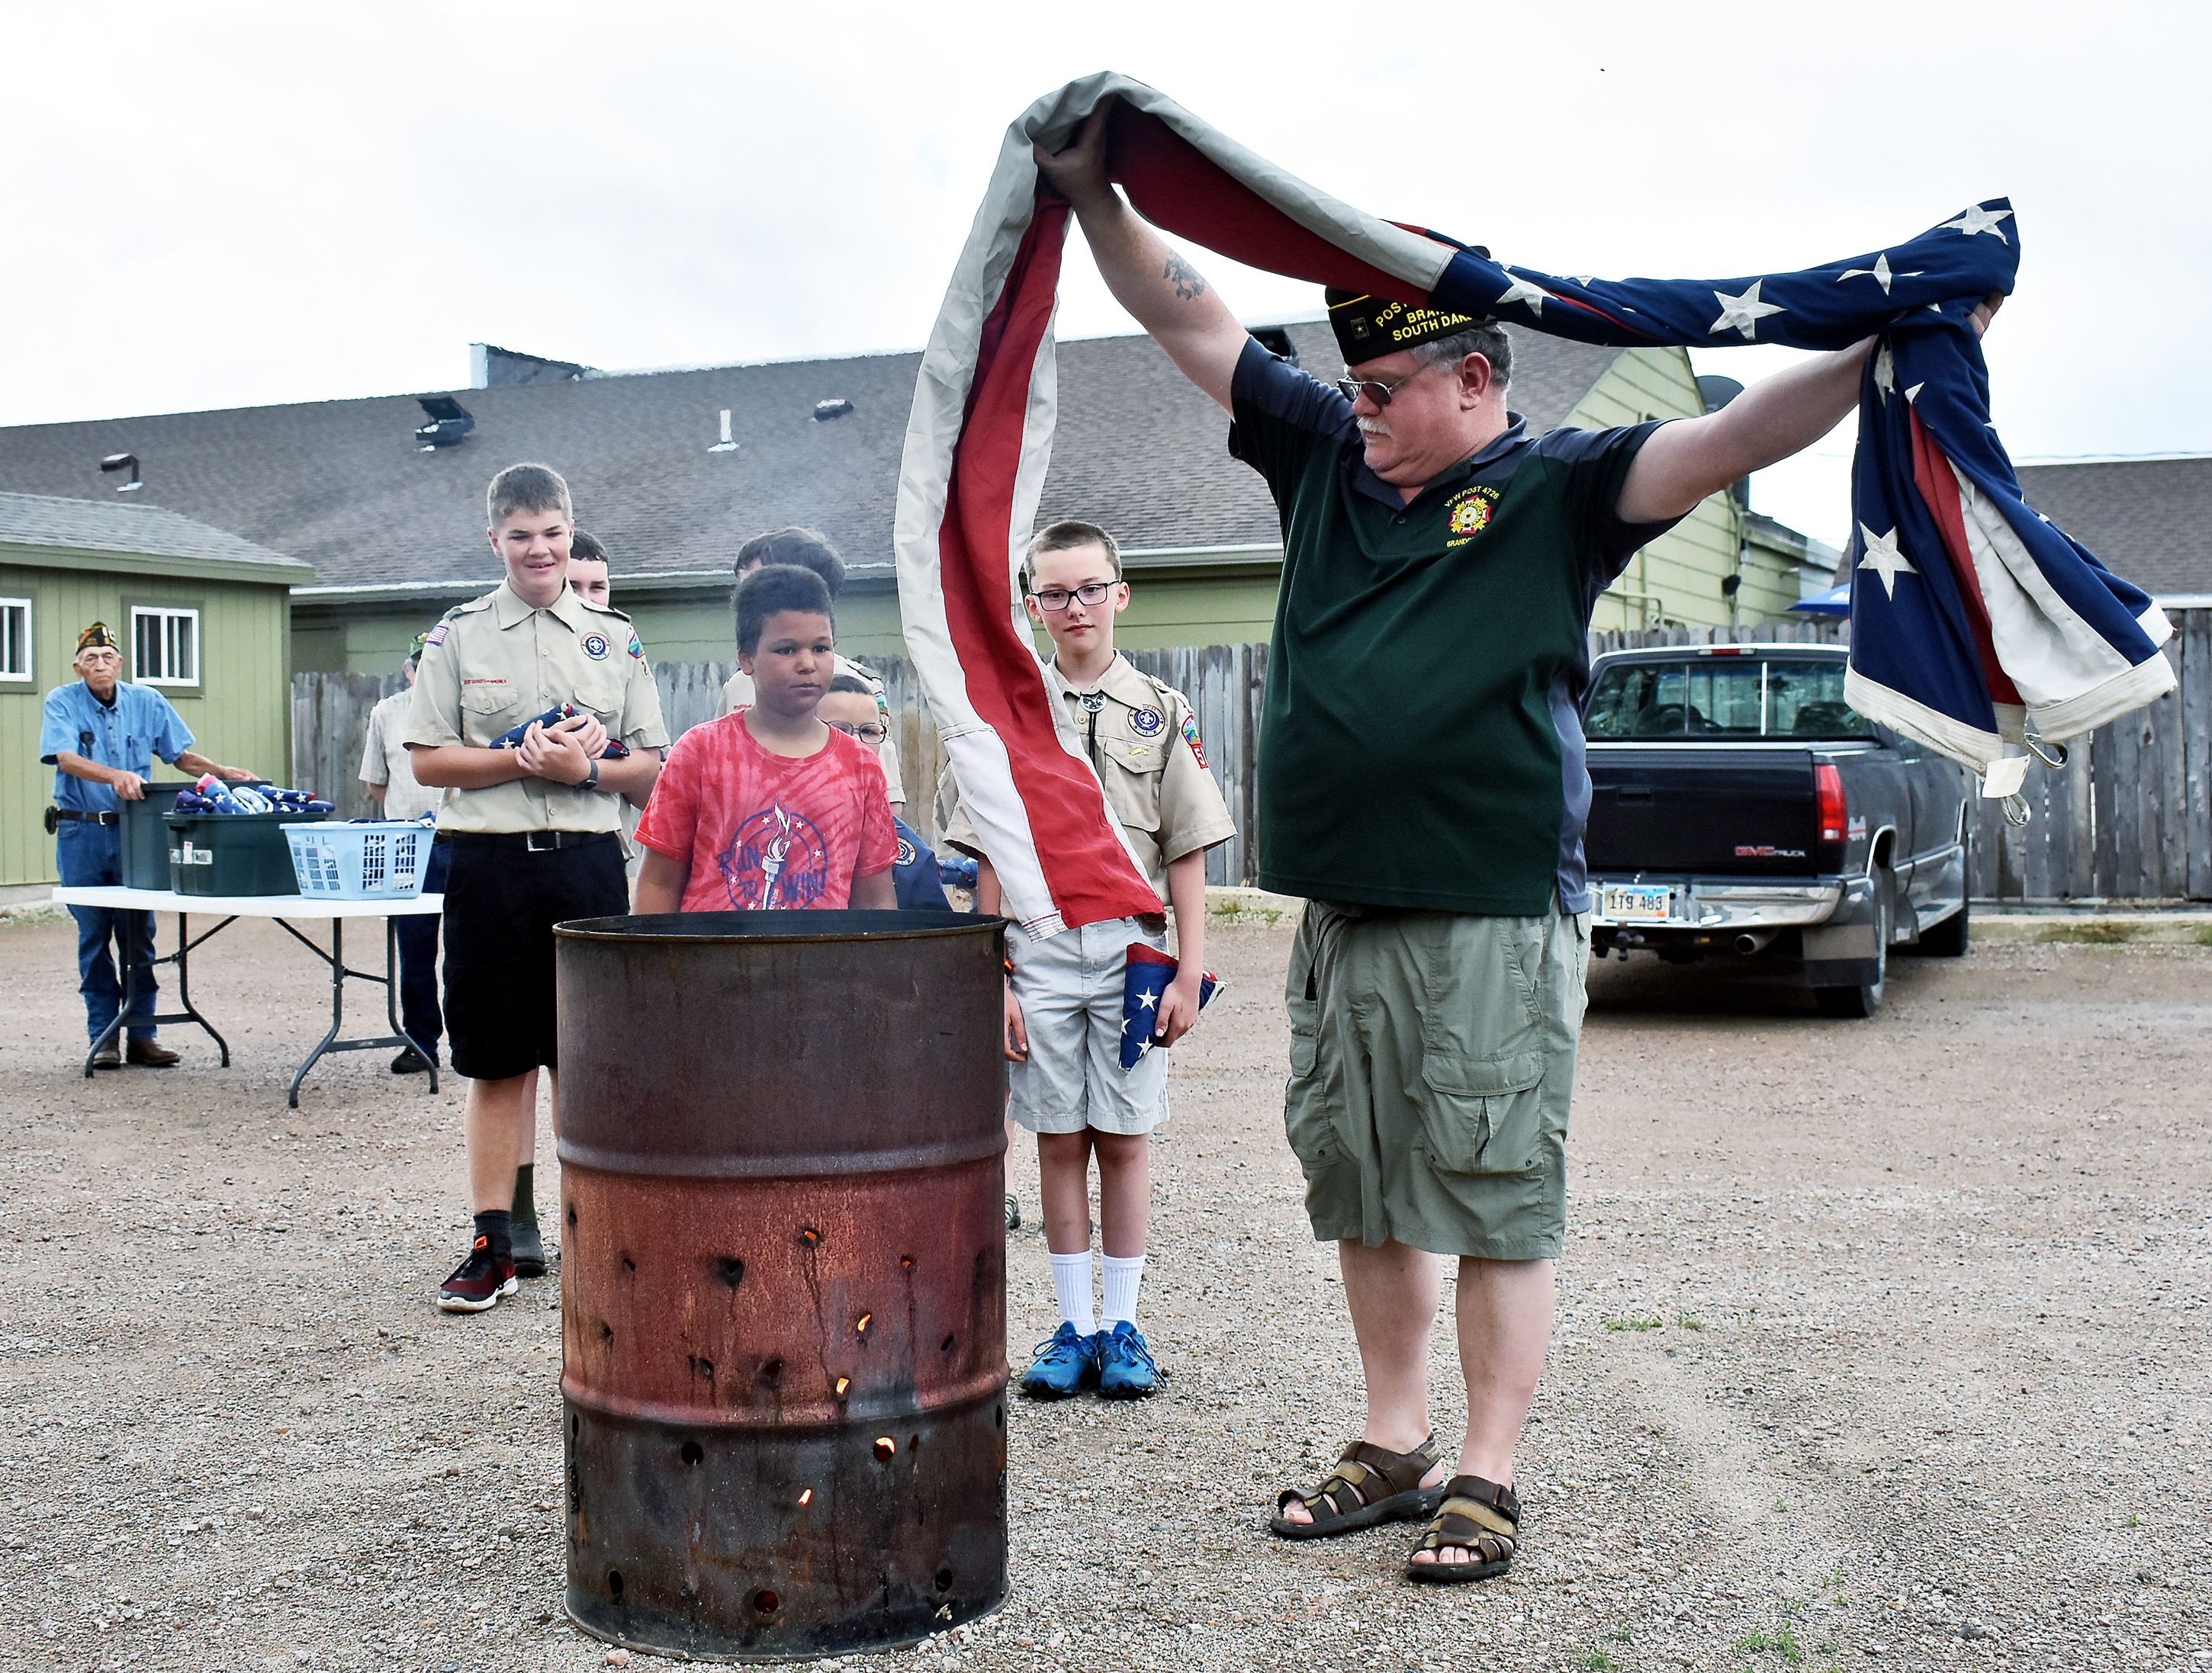 "Brandon VFW Post Commander Troy Zimmerman demonstrates proper flag disposal Saturday to members of Boy Scout Troop 212 and Cub Scout Pack 582 <i>(from left) </i>Brayden Greene, Isaiah Gunnick and Noah Reyelts.<span class=""Apple-converted-space""> <strong>Jamie Hult/BV Journal</strong></span>*/"